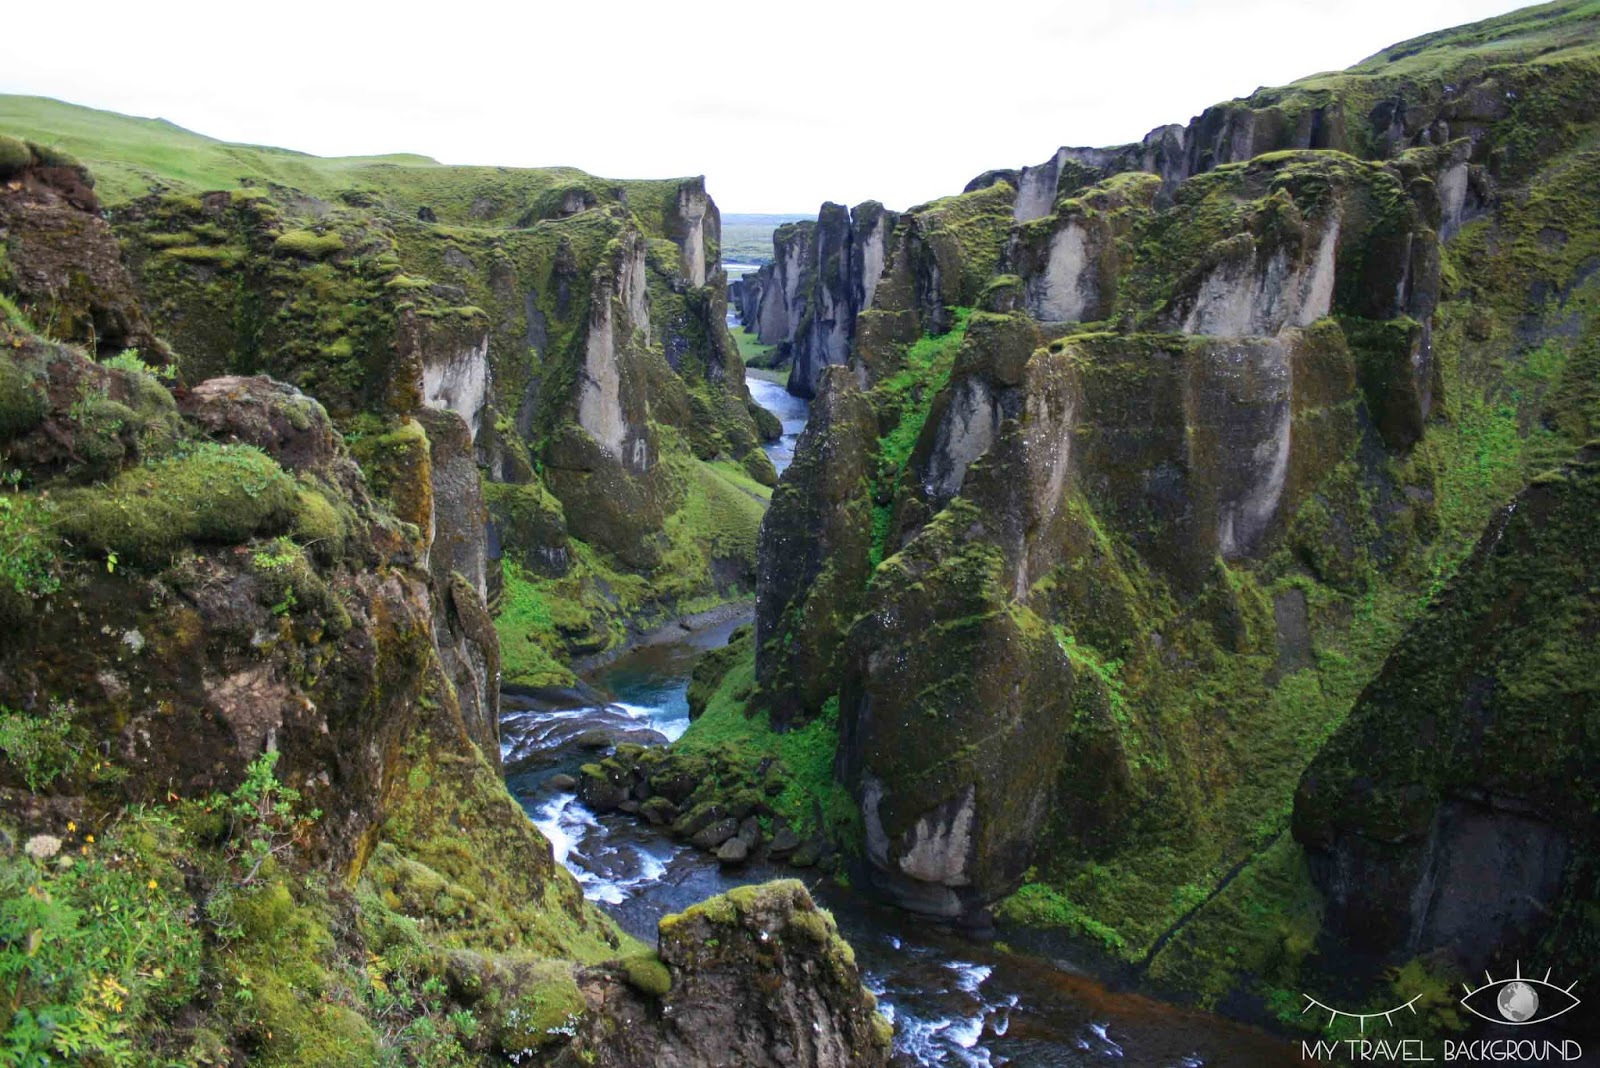 My Travel Background : le sud de l'Islande, de Vik à Höfn - Le canyon de Fjadrargljufur